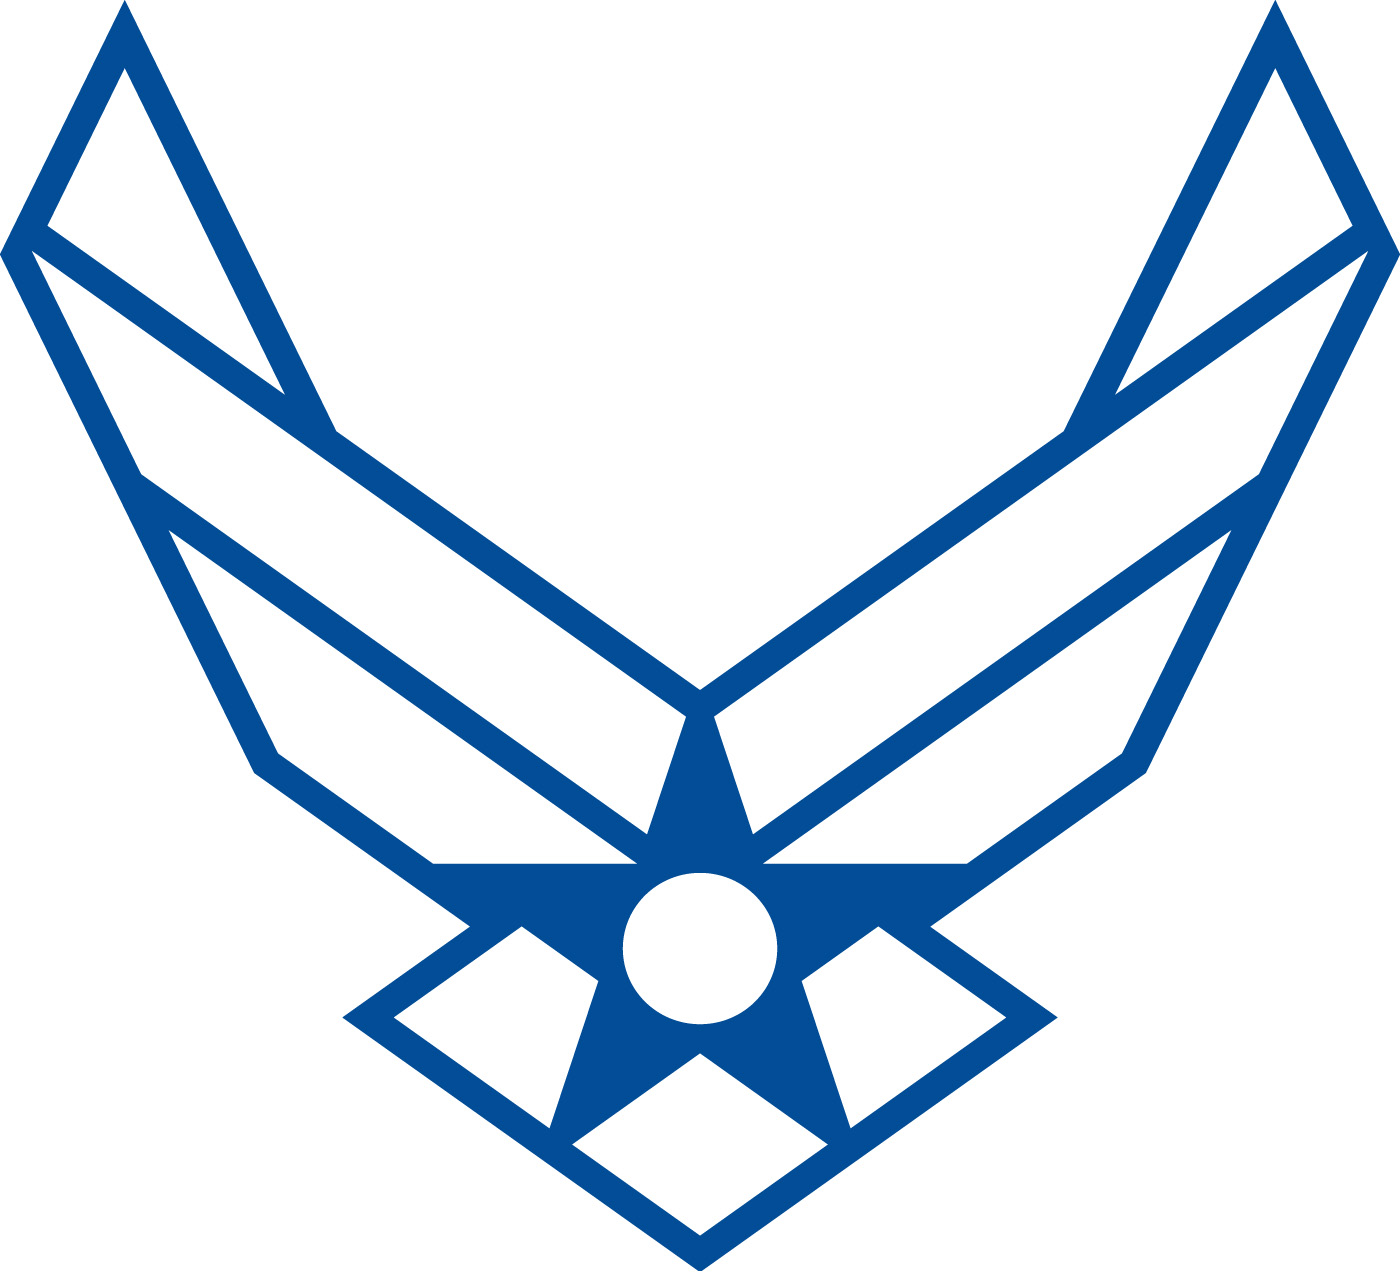 Shield clipart air force 20clipart Panda Free Images Gravity